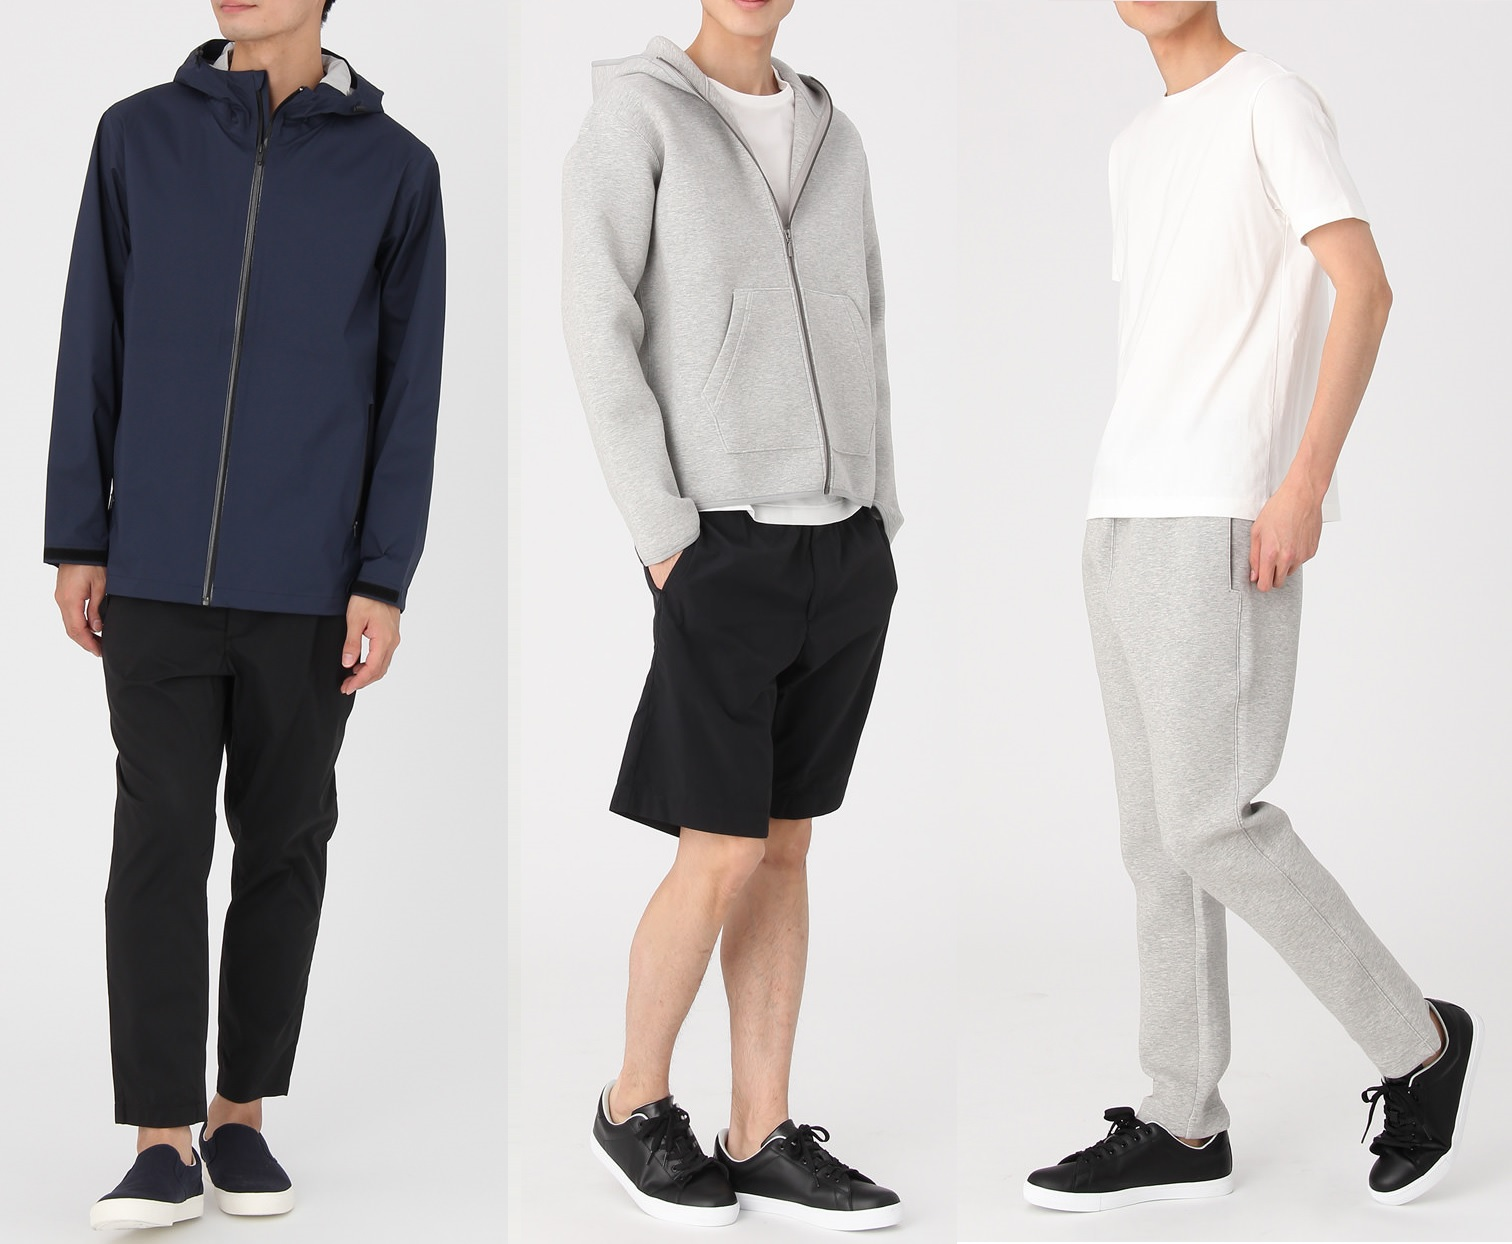 muji-net-2017-spring-summer-batting-order